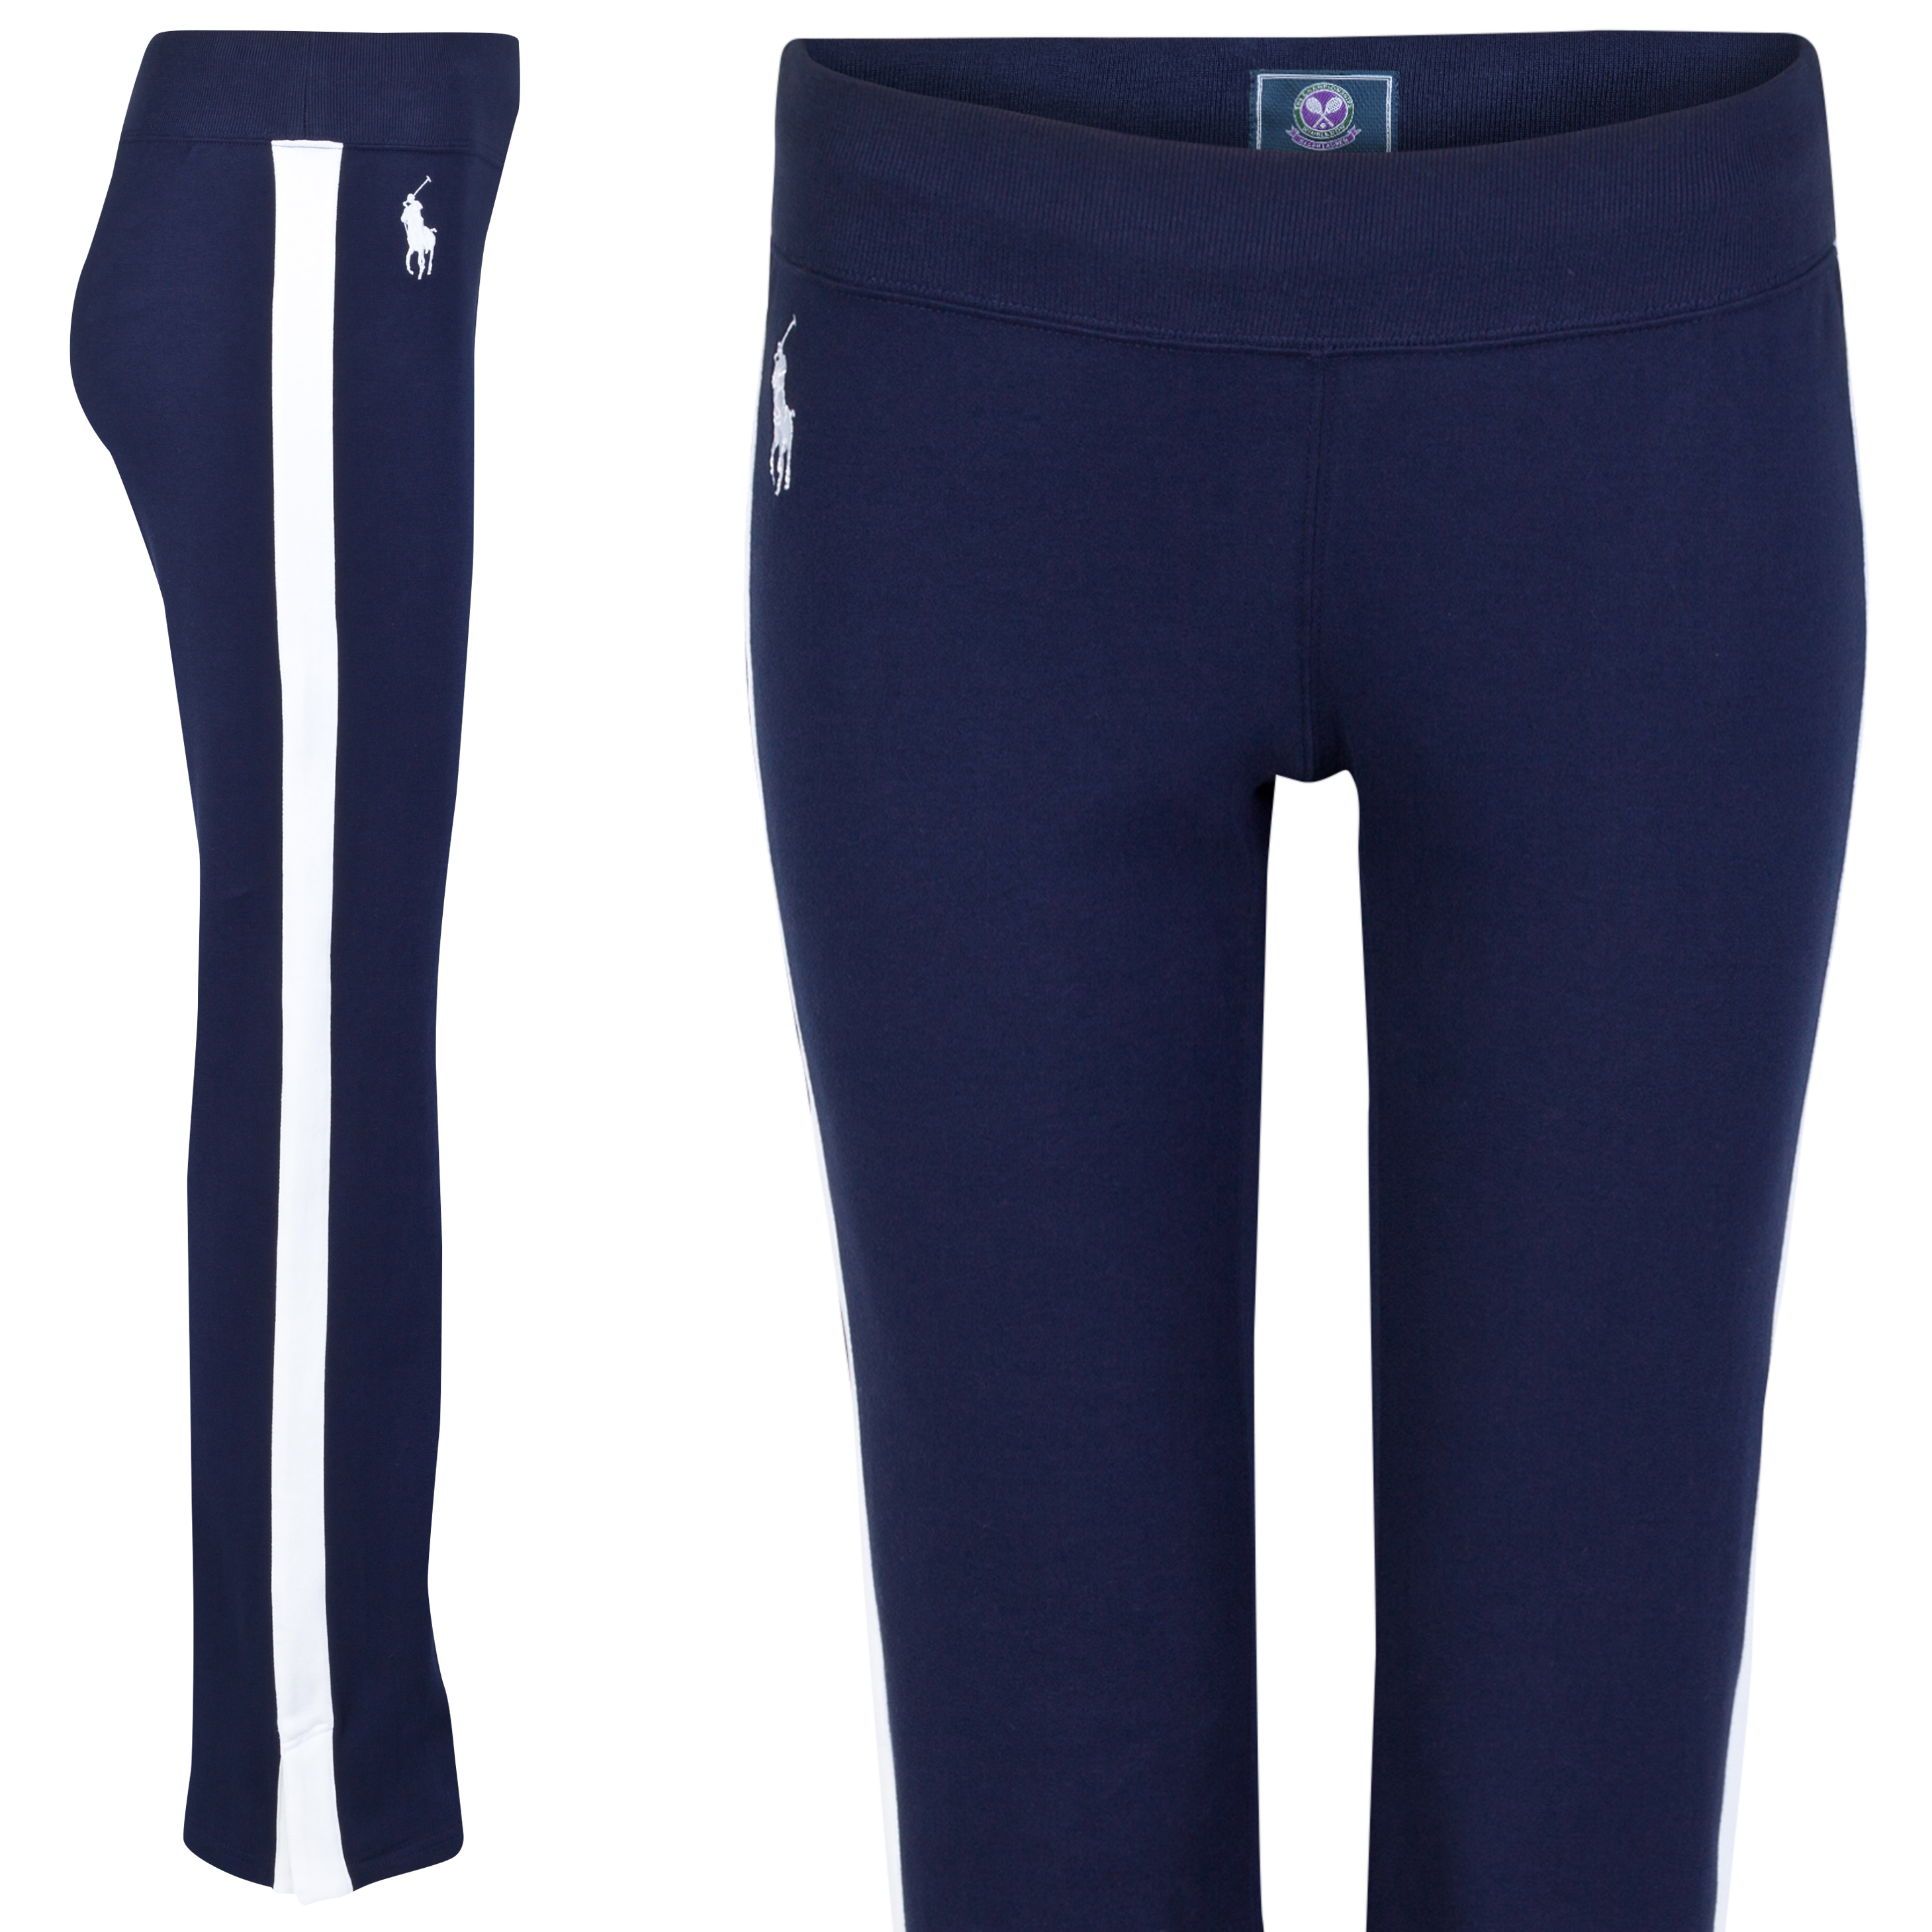 Wimbledon Ralph Lauren Wimbledon Ball Girl Warm Up Pant - Womens Navy